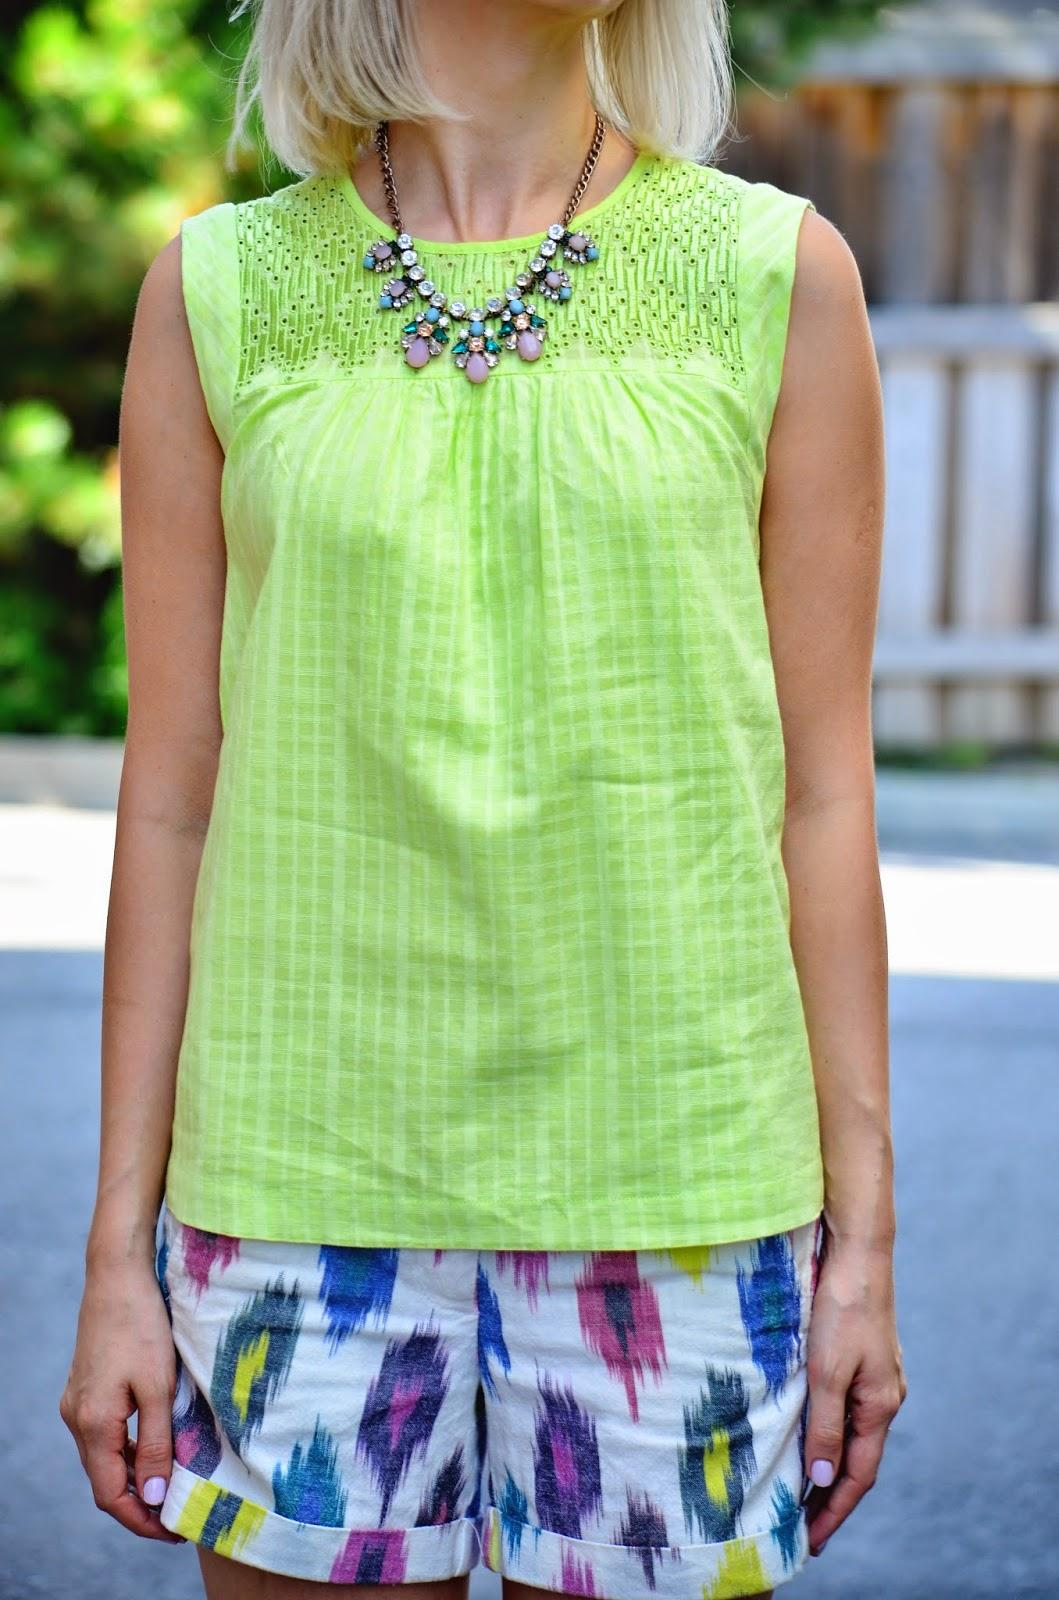 neon top, jcrew top, jcrew shorts, pastel necklace, crystal necklace, neon color, neon style